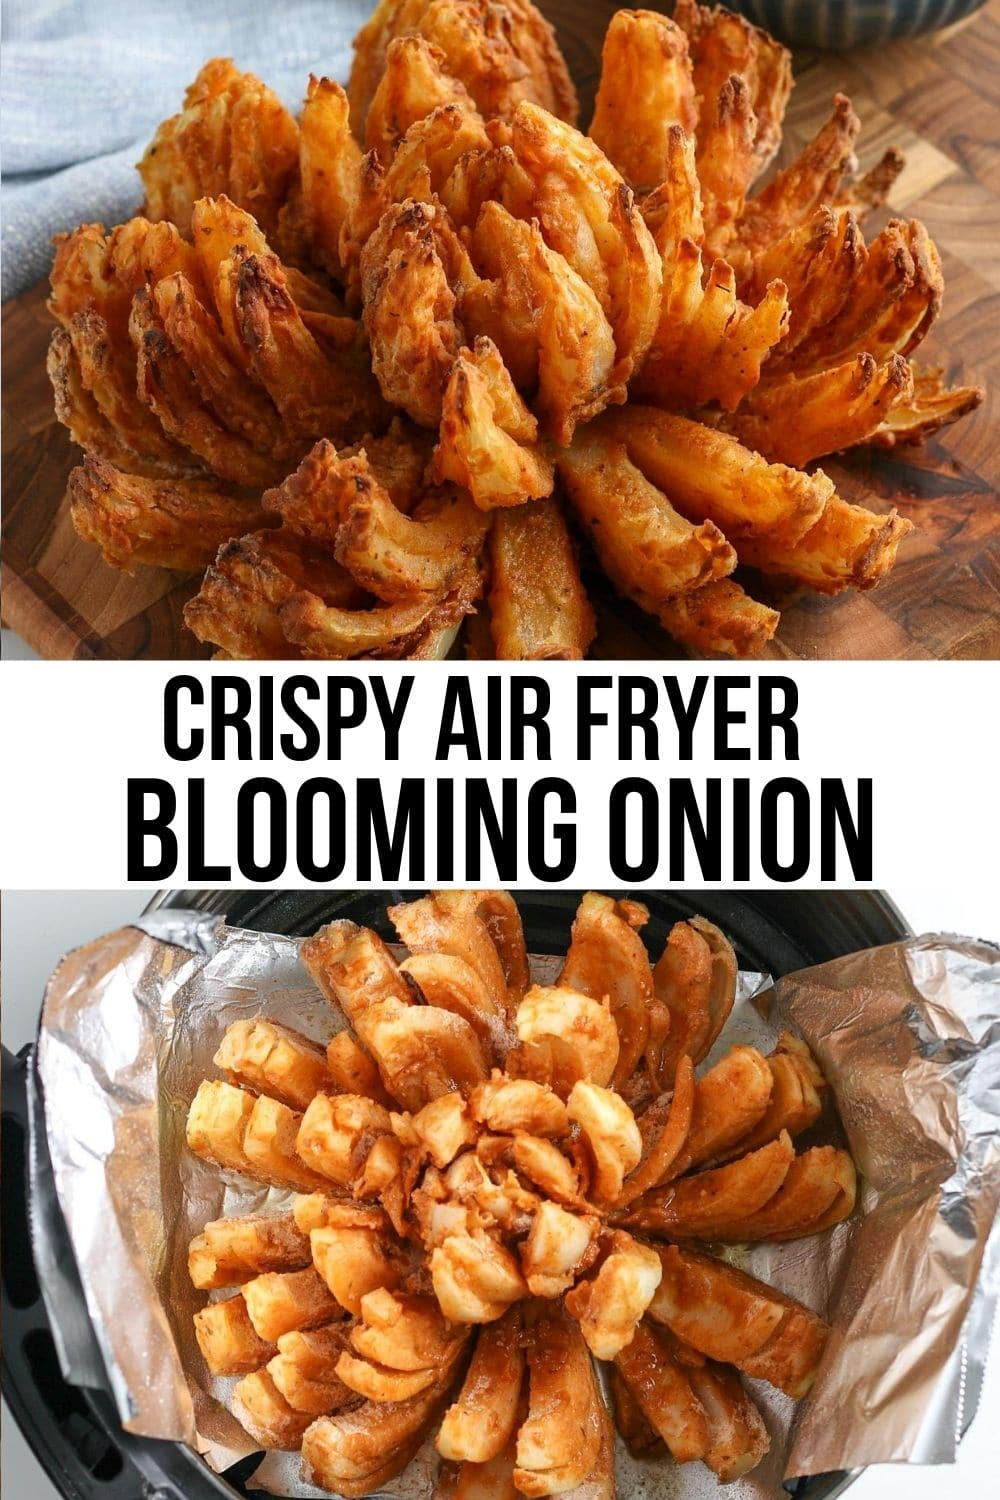 collage of air fried blooming onion.